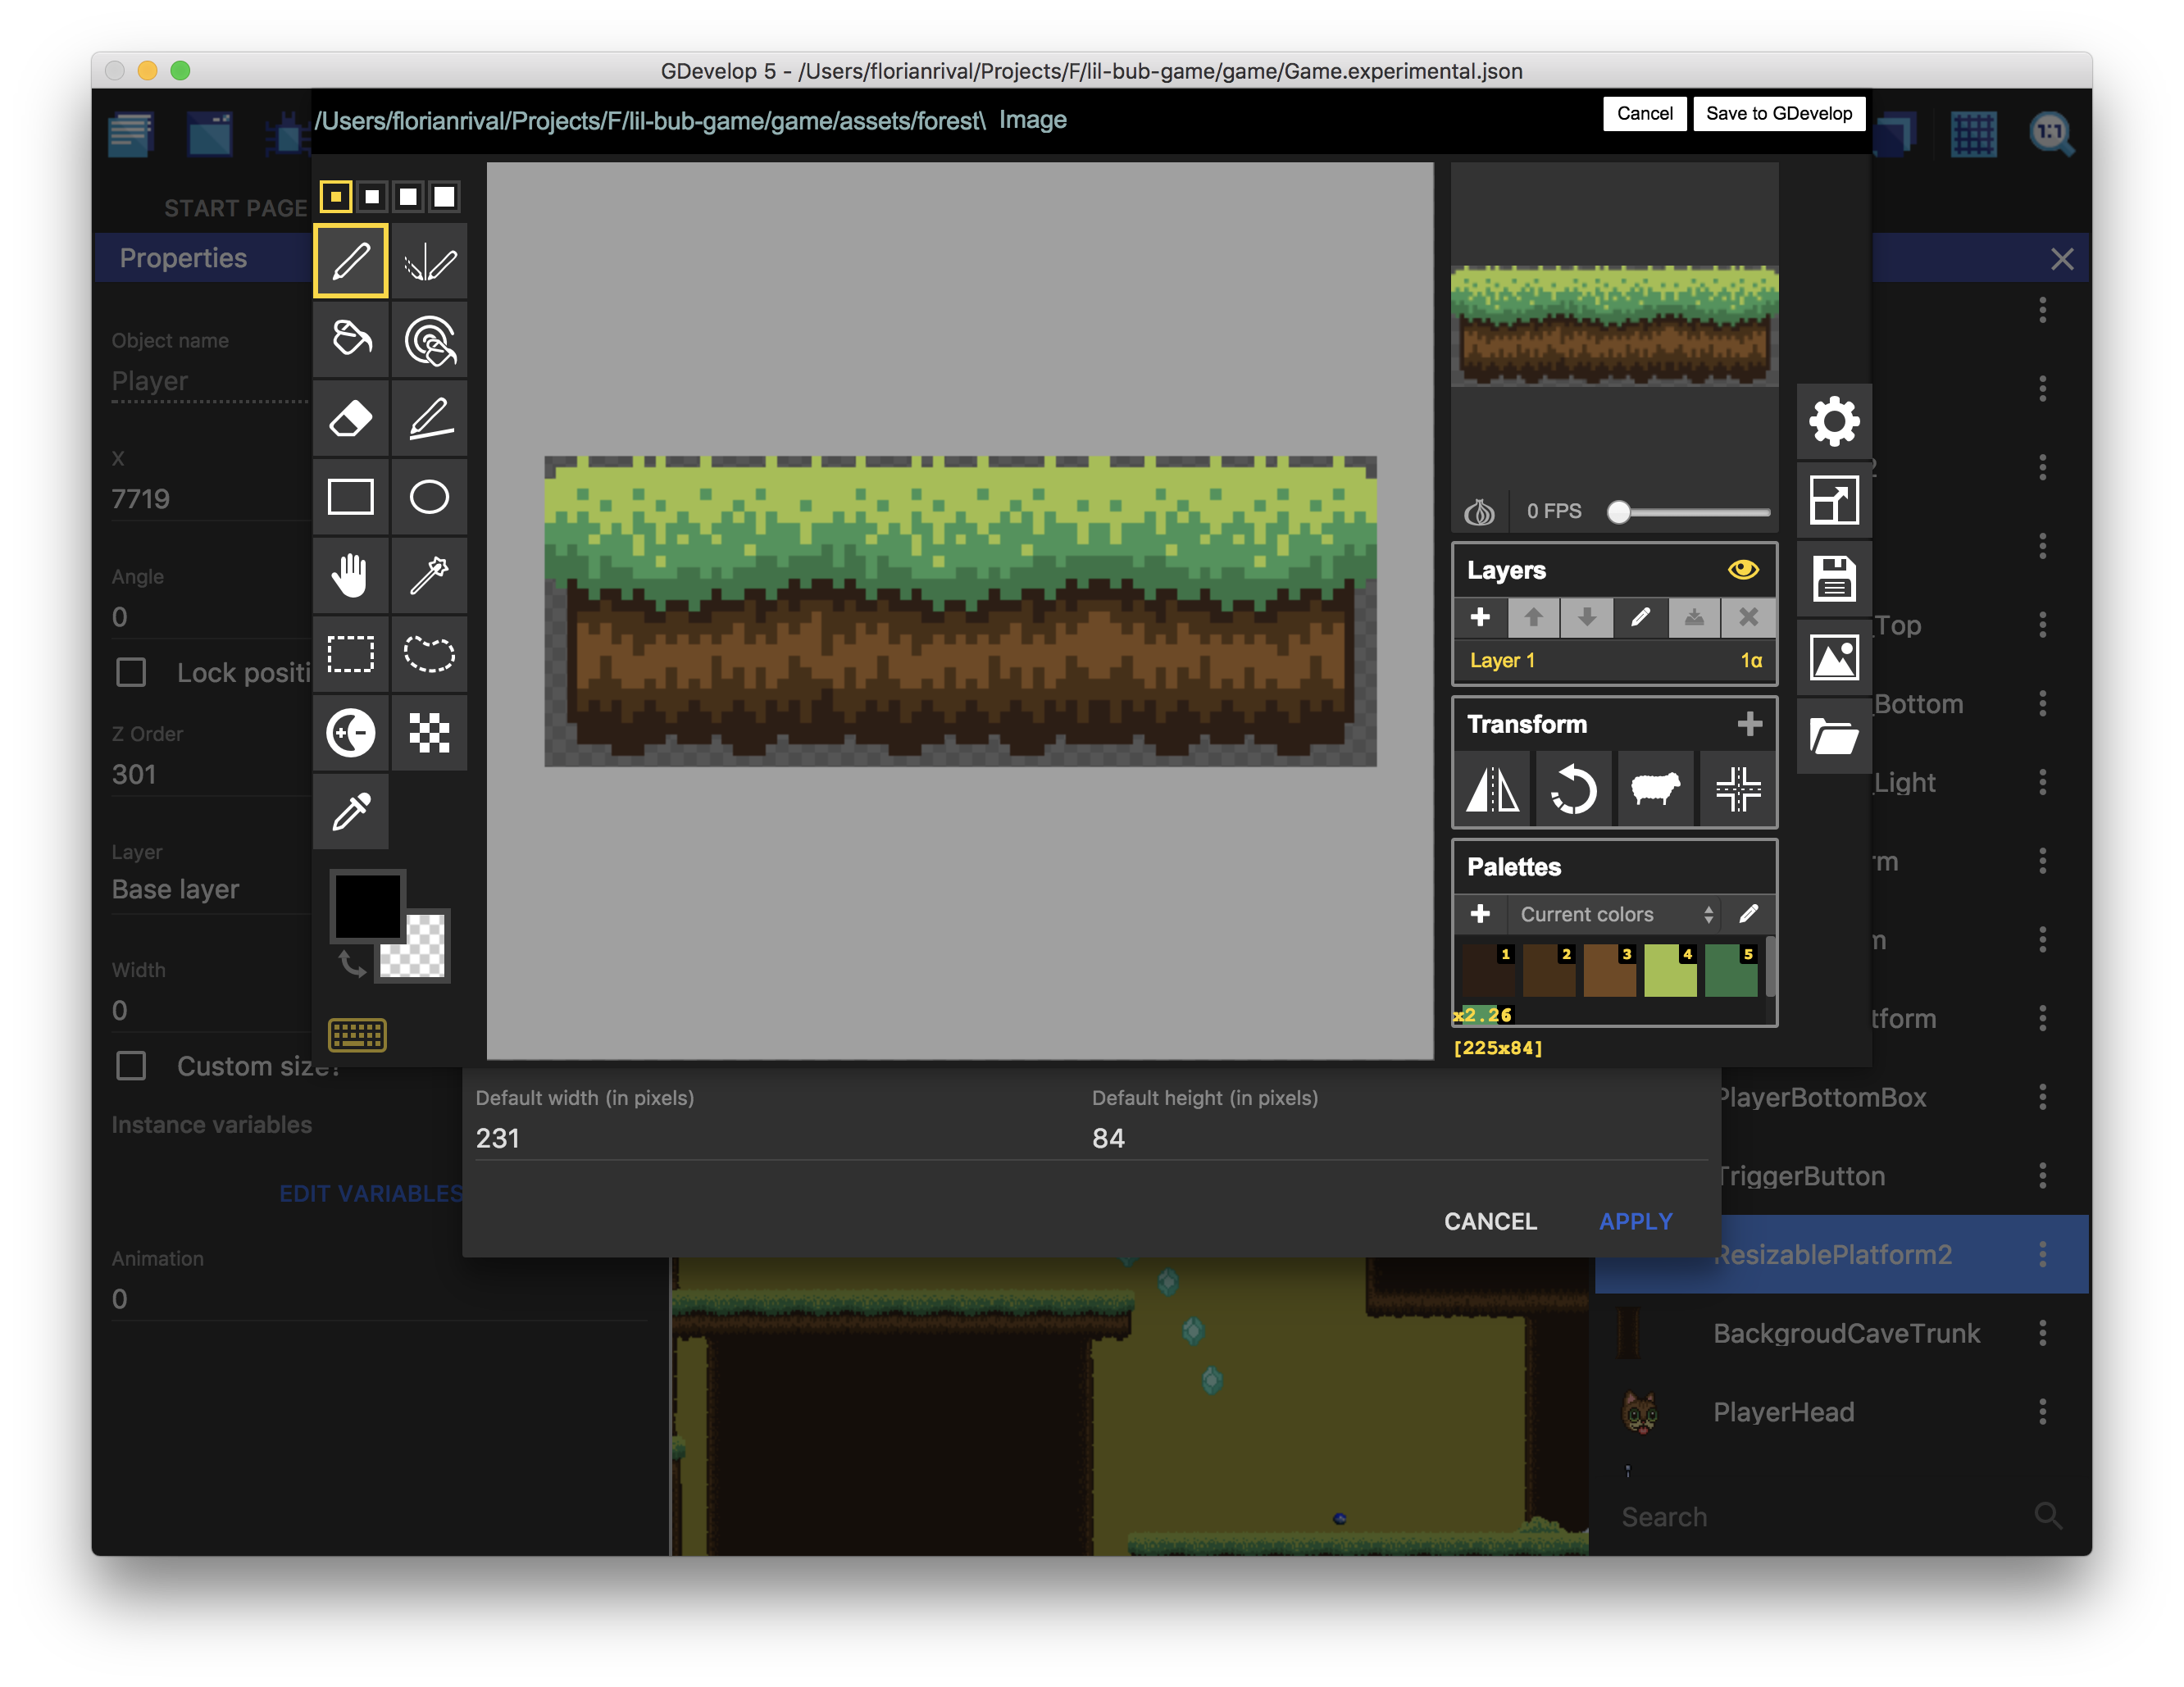 Editing a sprite with Piskel, embedded editor in GDevelop